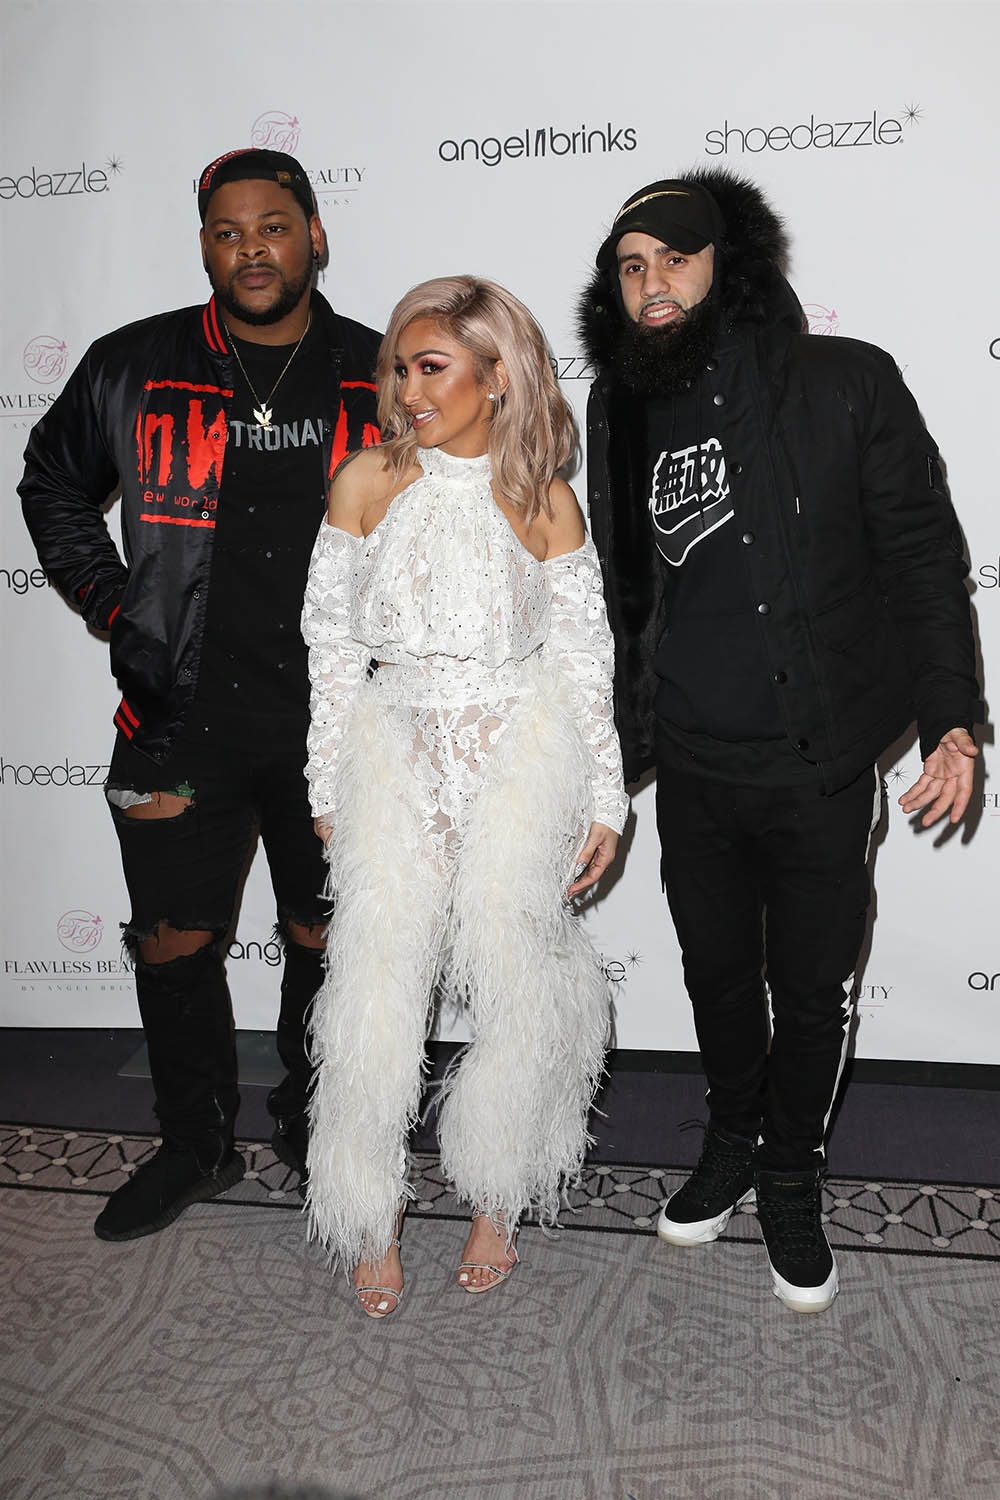 Nick and Pattiwhack with Angel Brinks